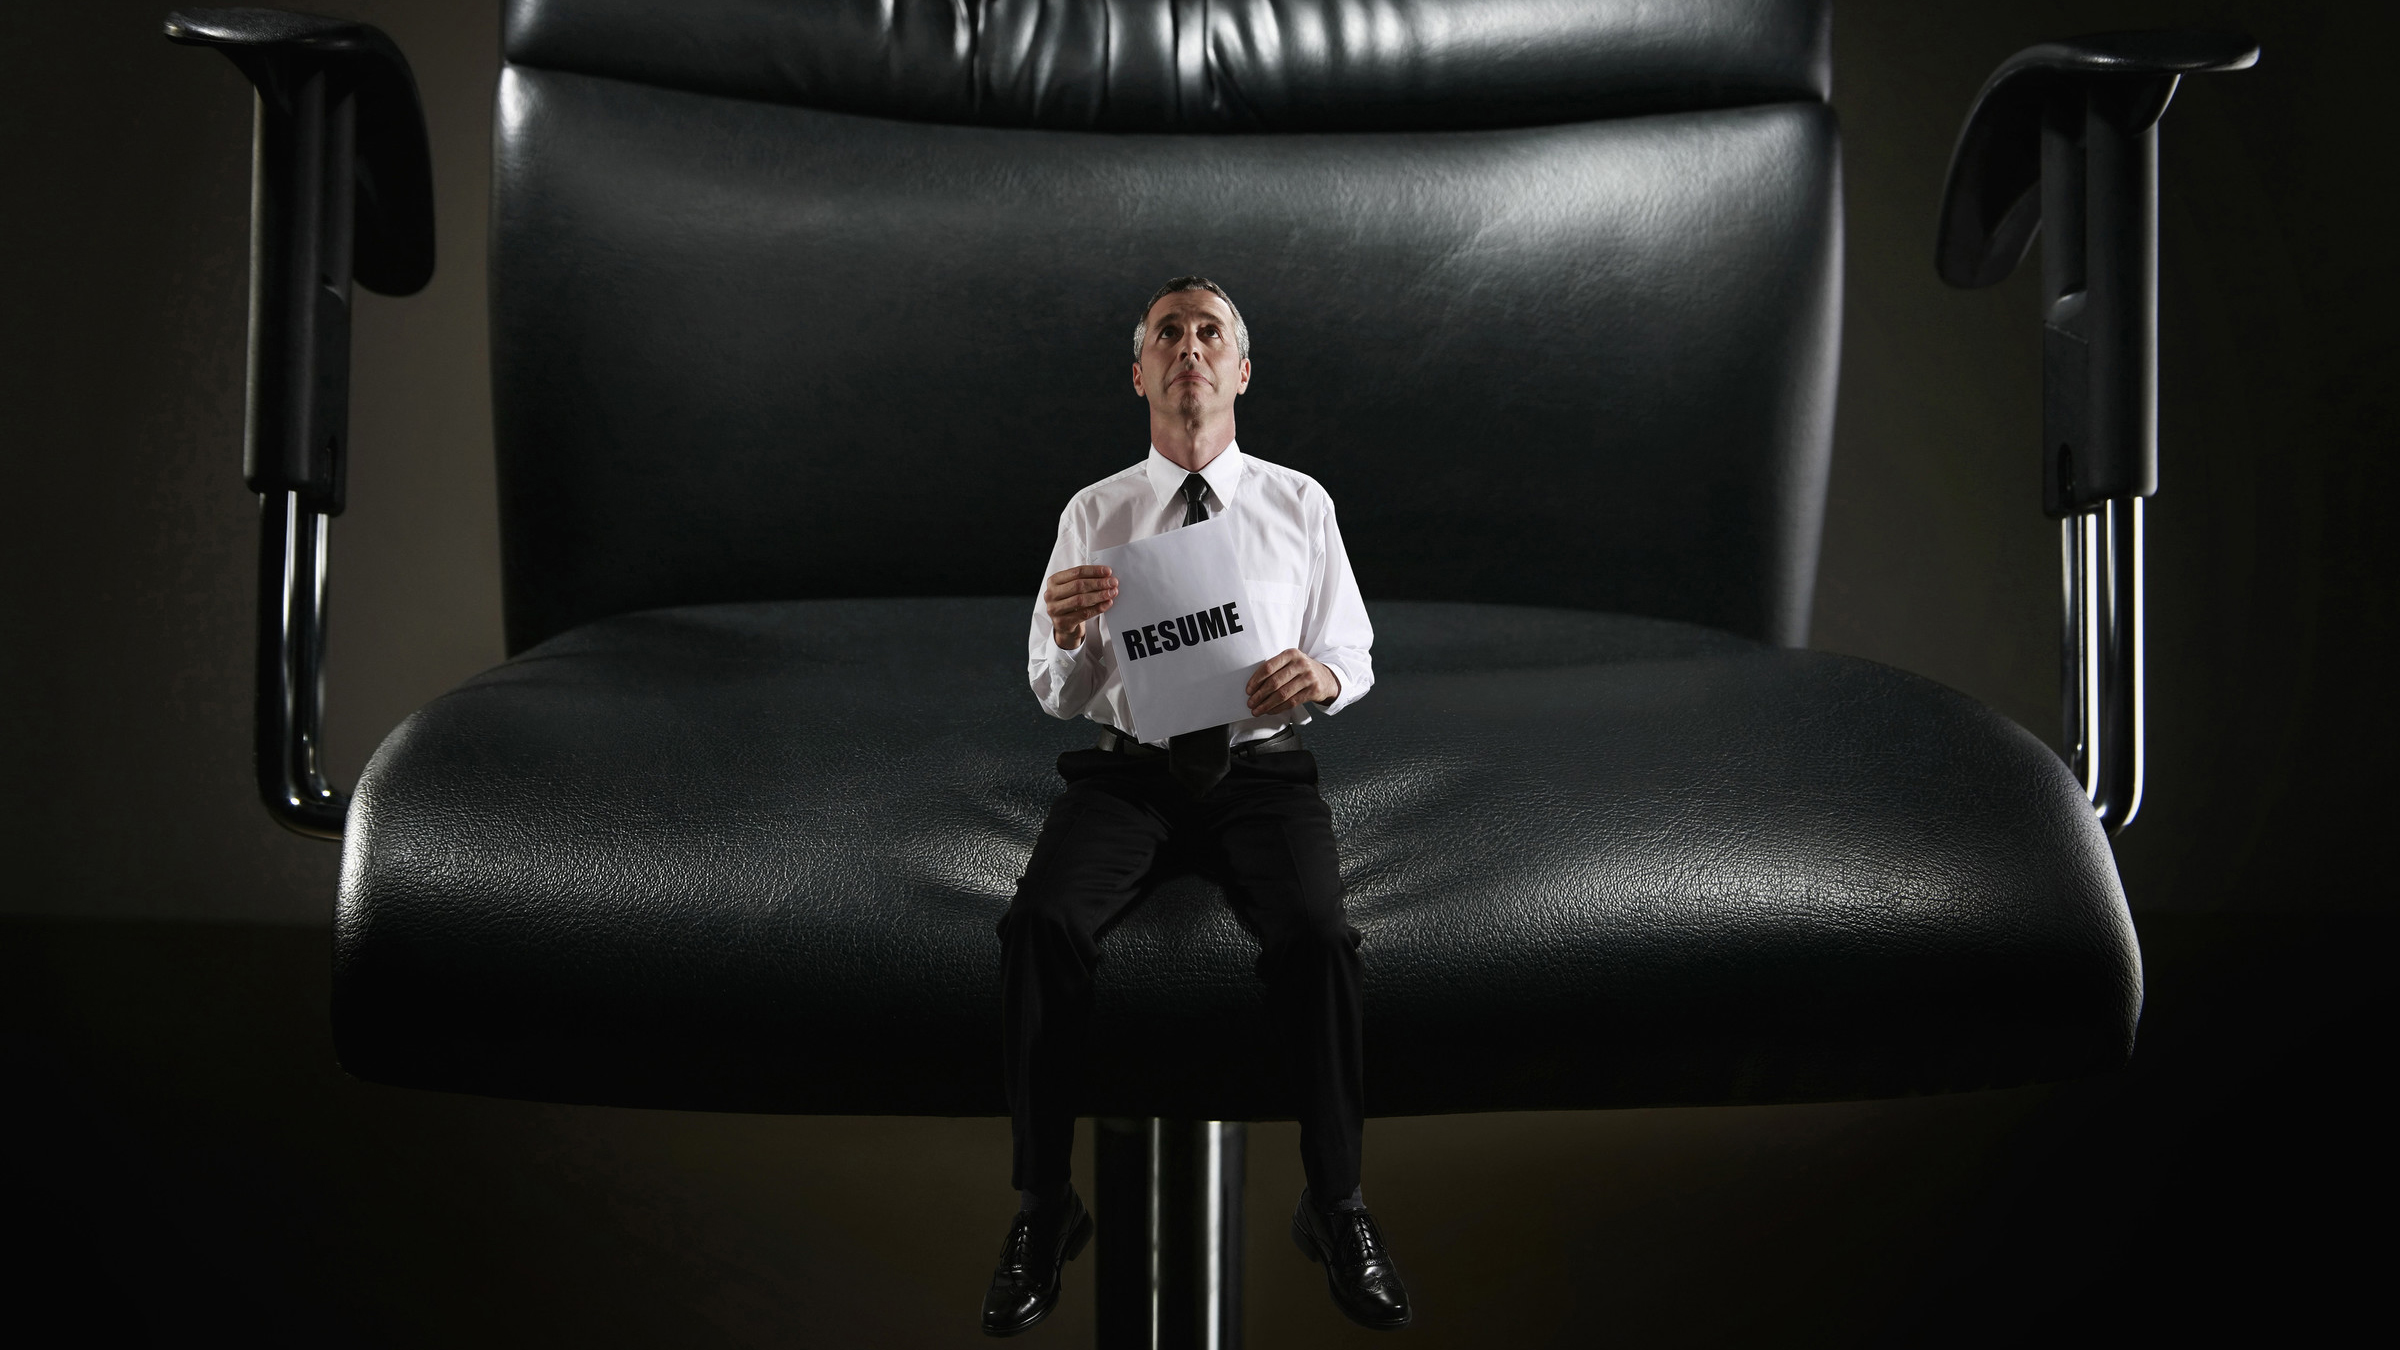 Mini Sized Businessman Sitting on a Giant Chair Holding Resume --- Image by © Inspirestock/Corbis